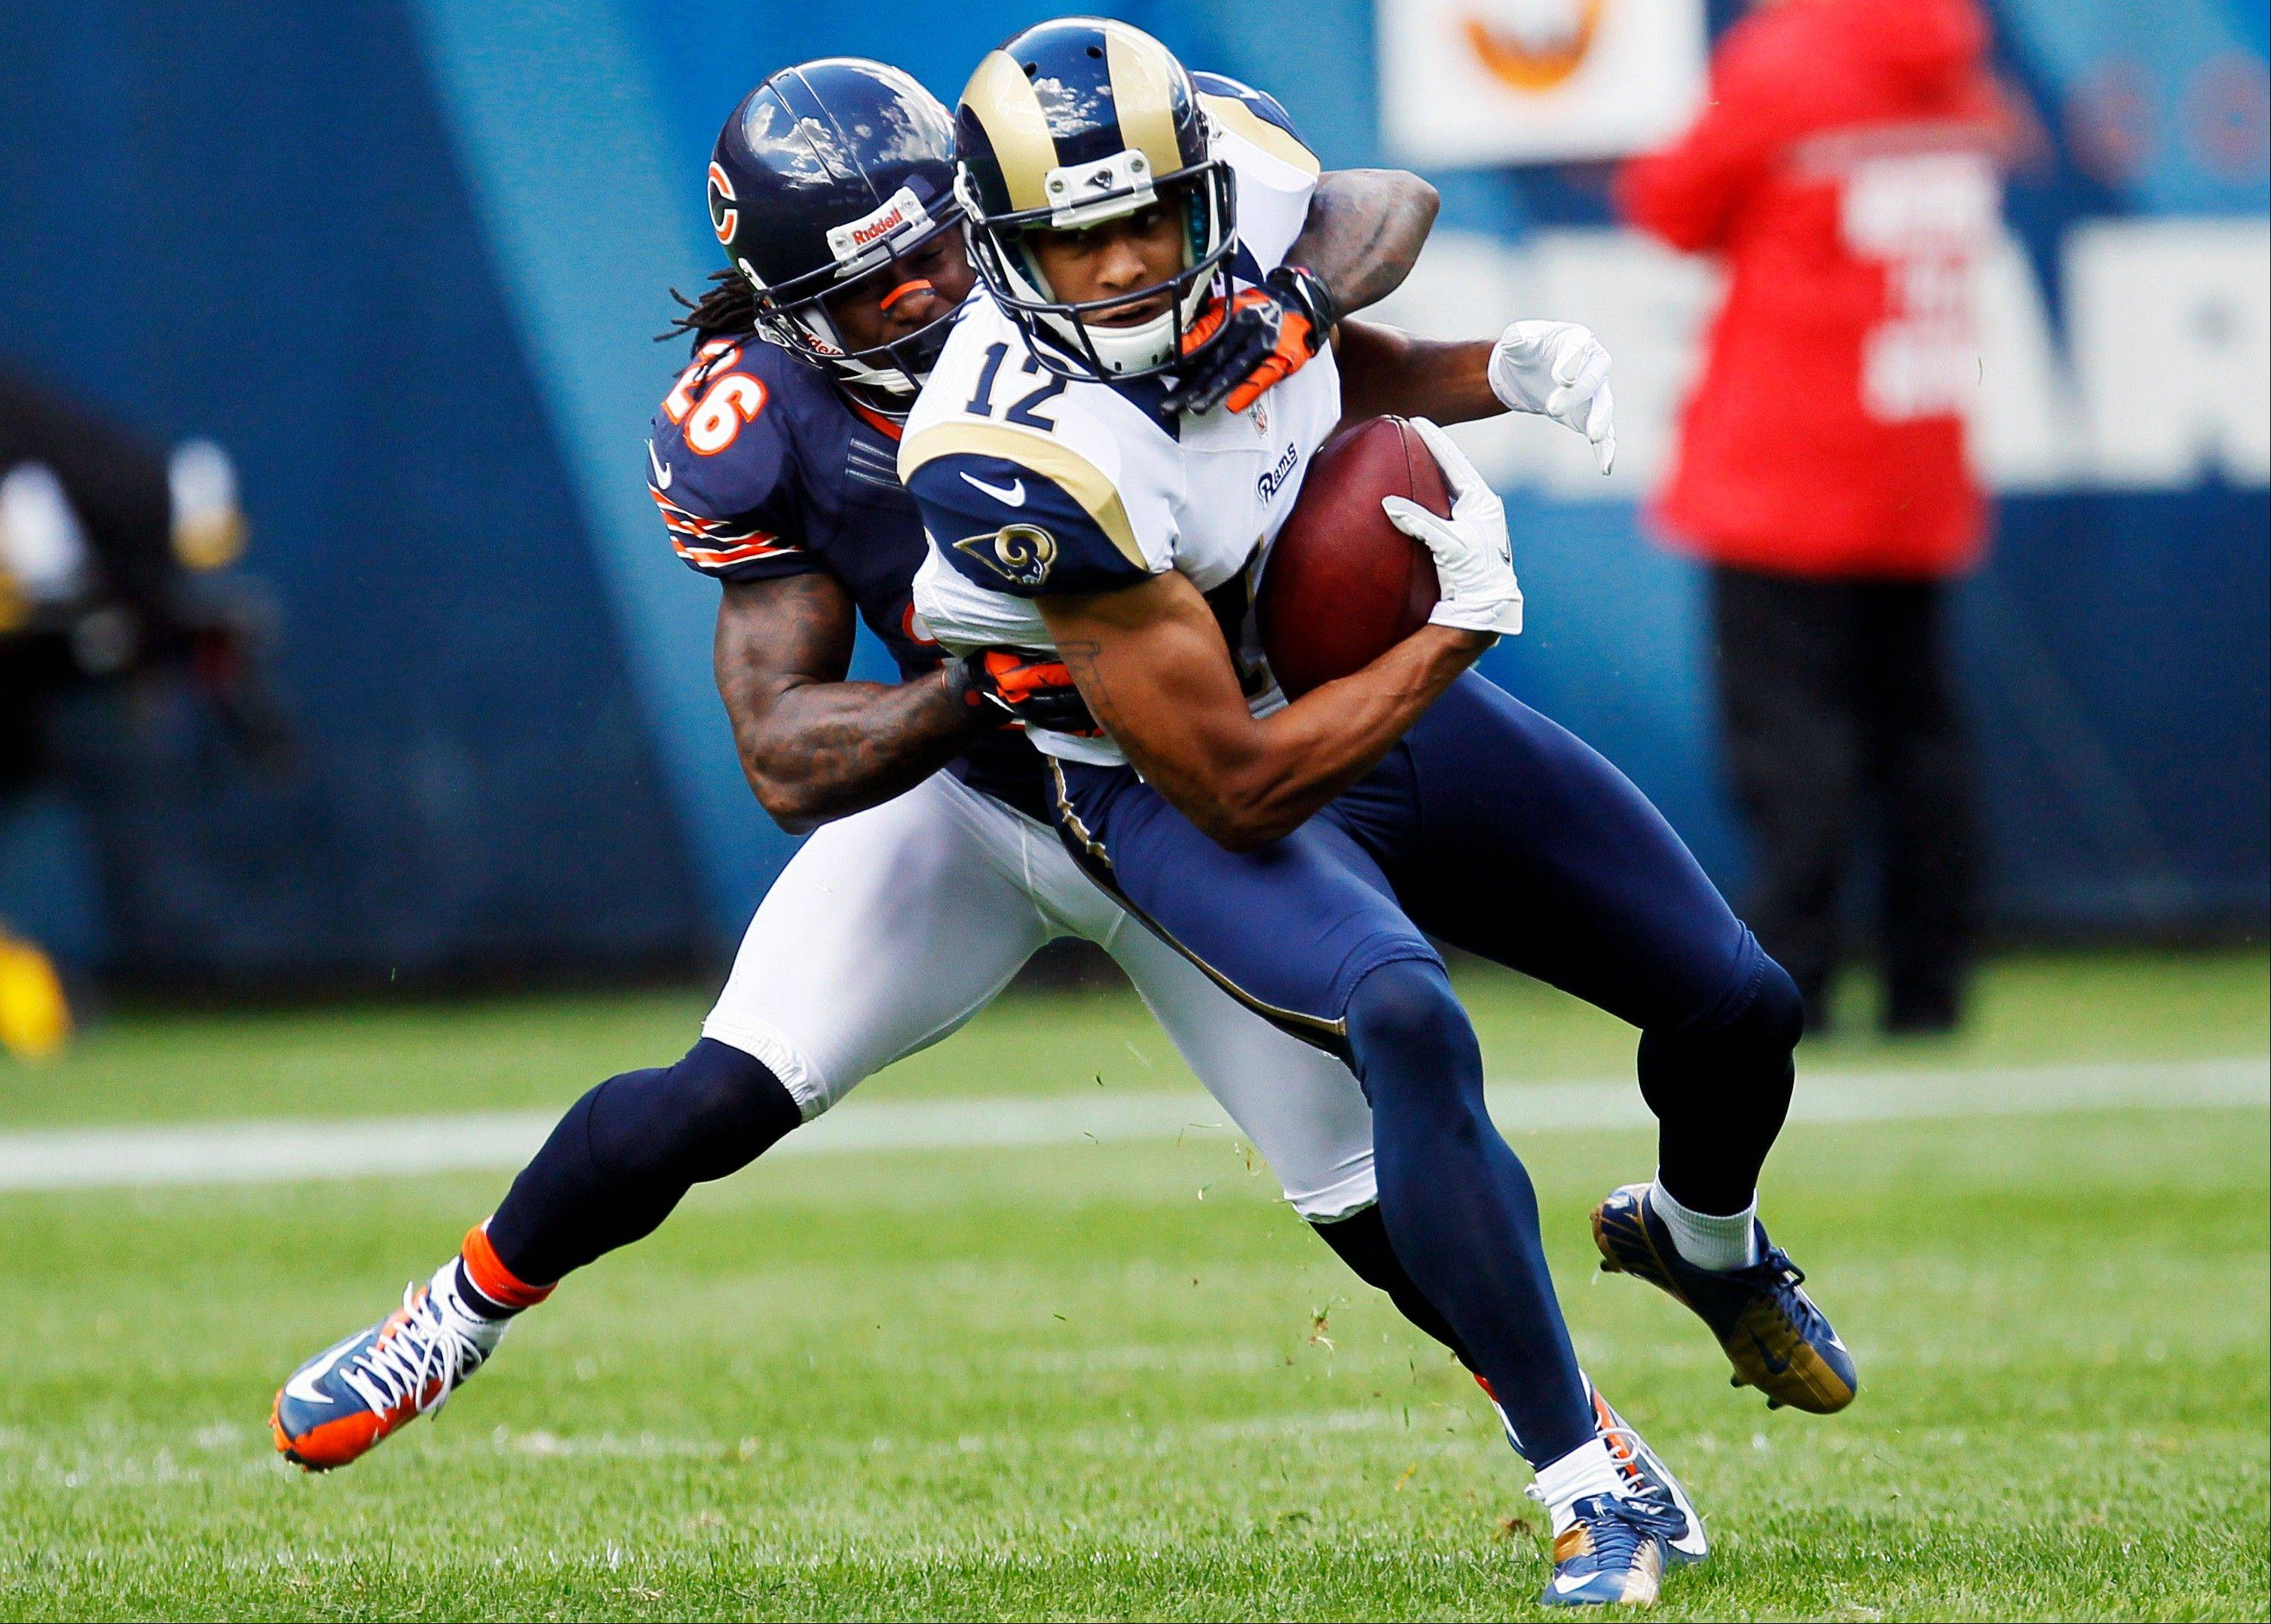 St. Louis Rams wide receiver Steve Smith is tackled from behind by Chicago Bears cornerback Tim Jennings in the first half of the NFL football game in Chicago, Sunday.